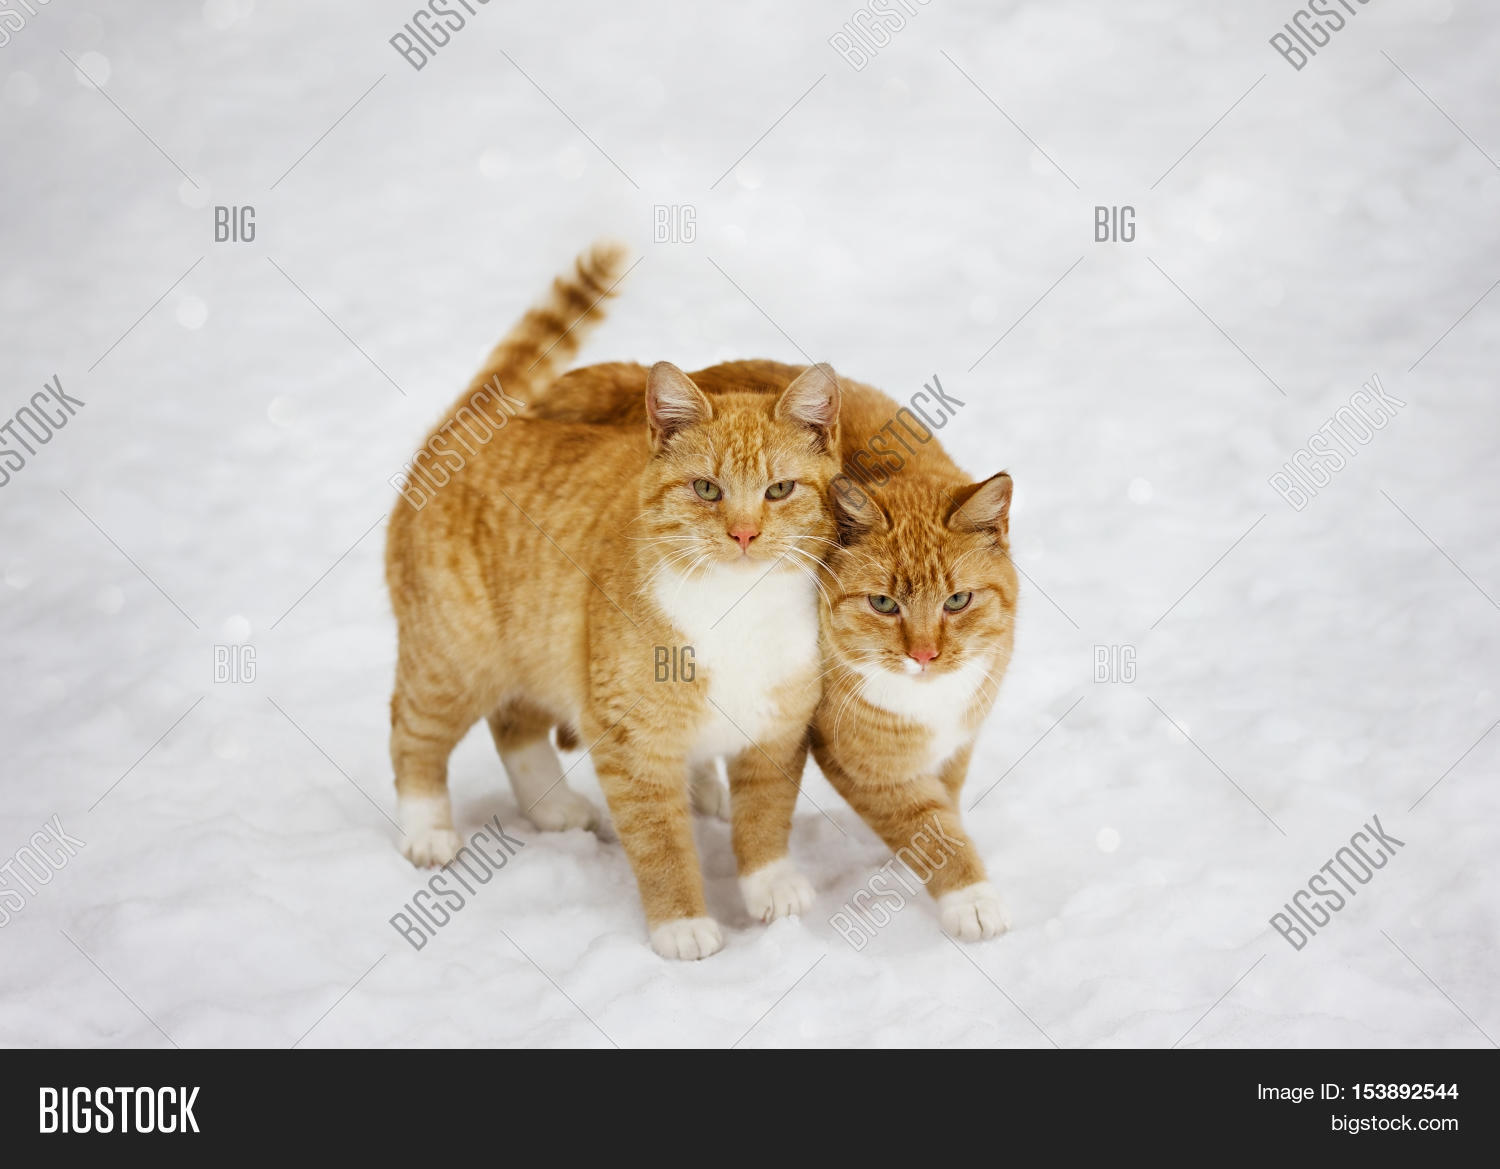 two cats nestled each other outdoor image photo bigstock. Black Bedroom Furniture Sets. Home Design Ideas